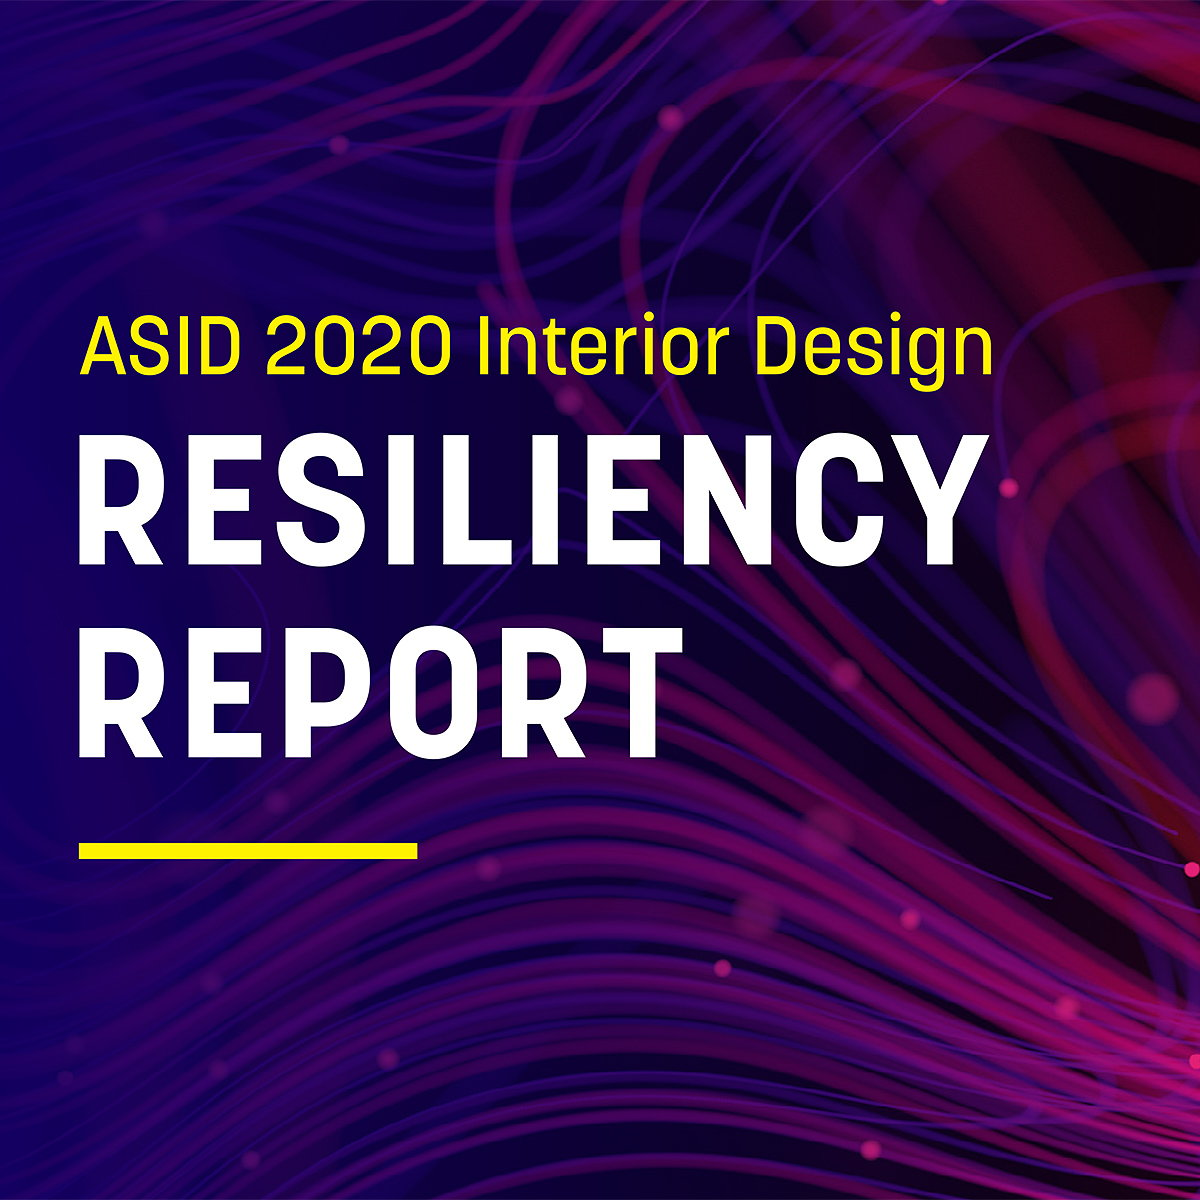 ASID Releases Interior Design Resiliency Report